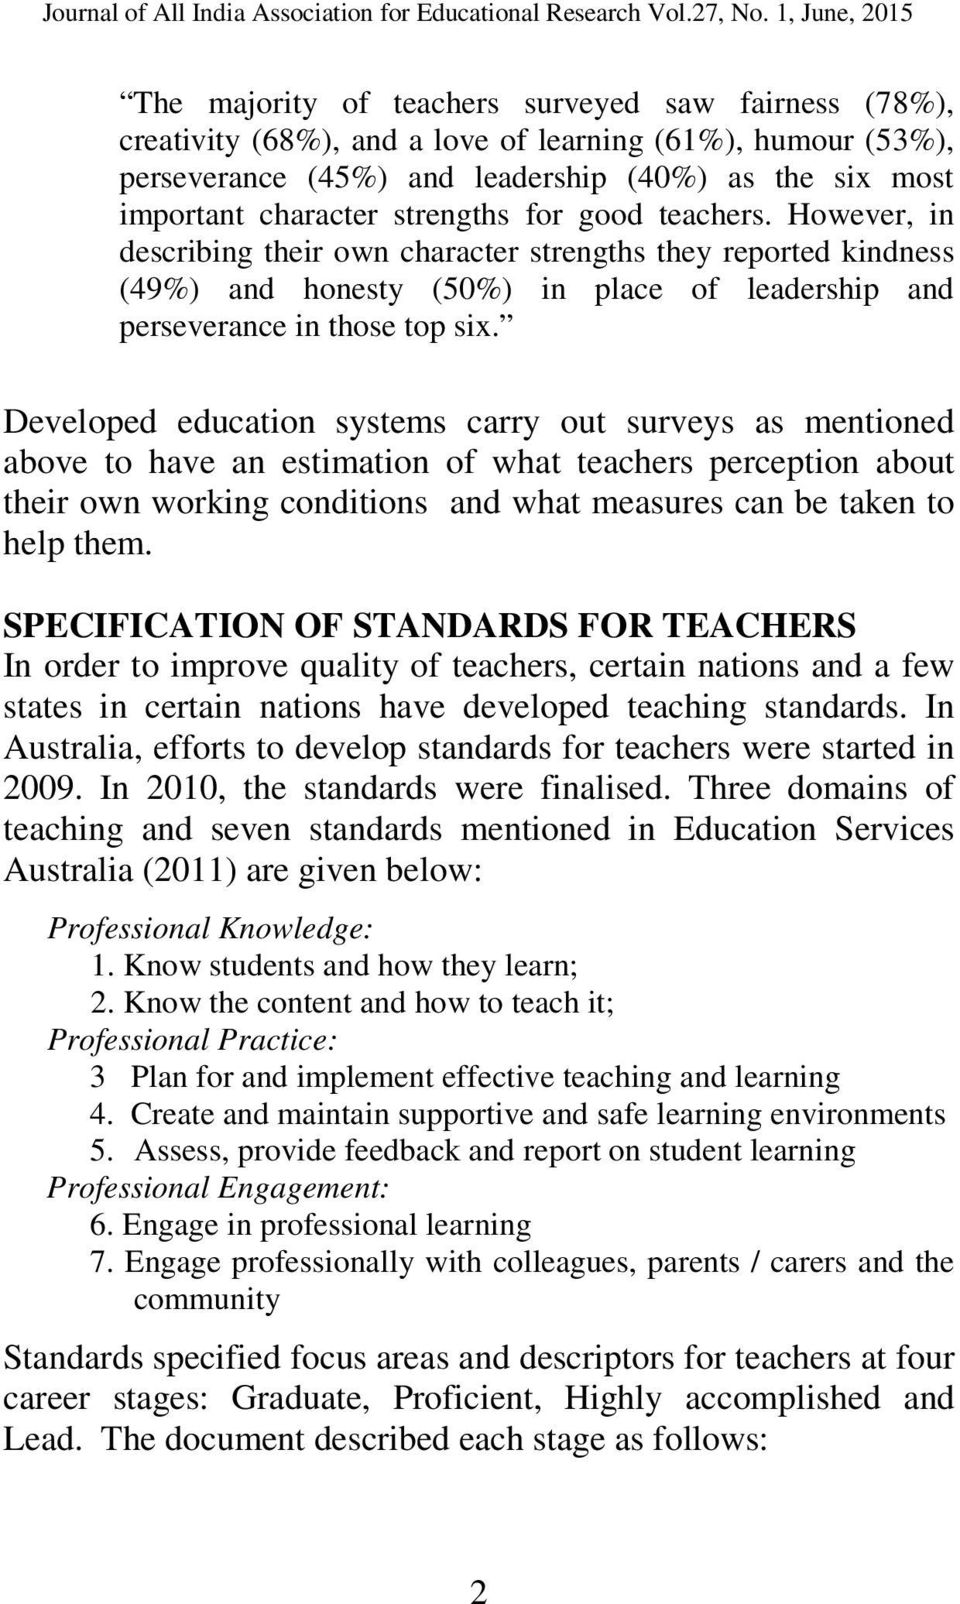 Do you need 2 Master's Degrees To be a Spanish teacher?